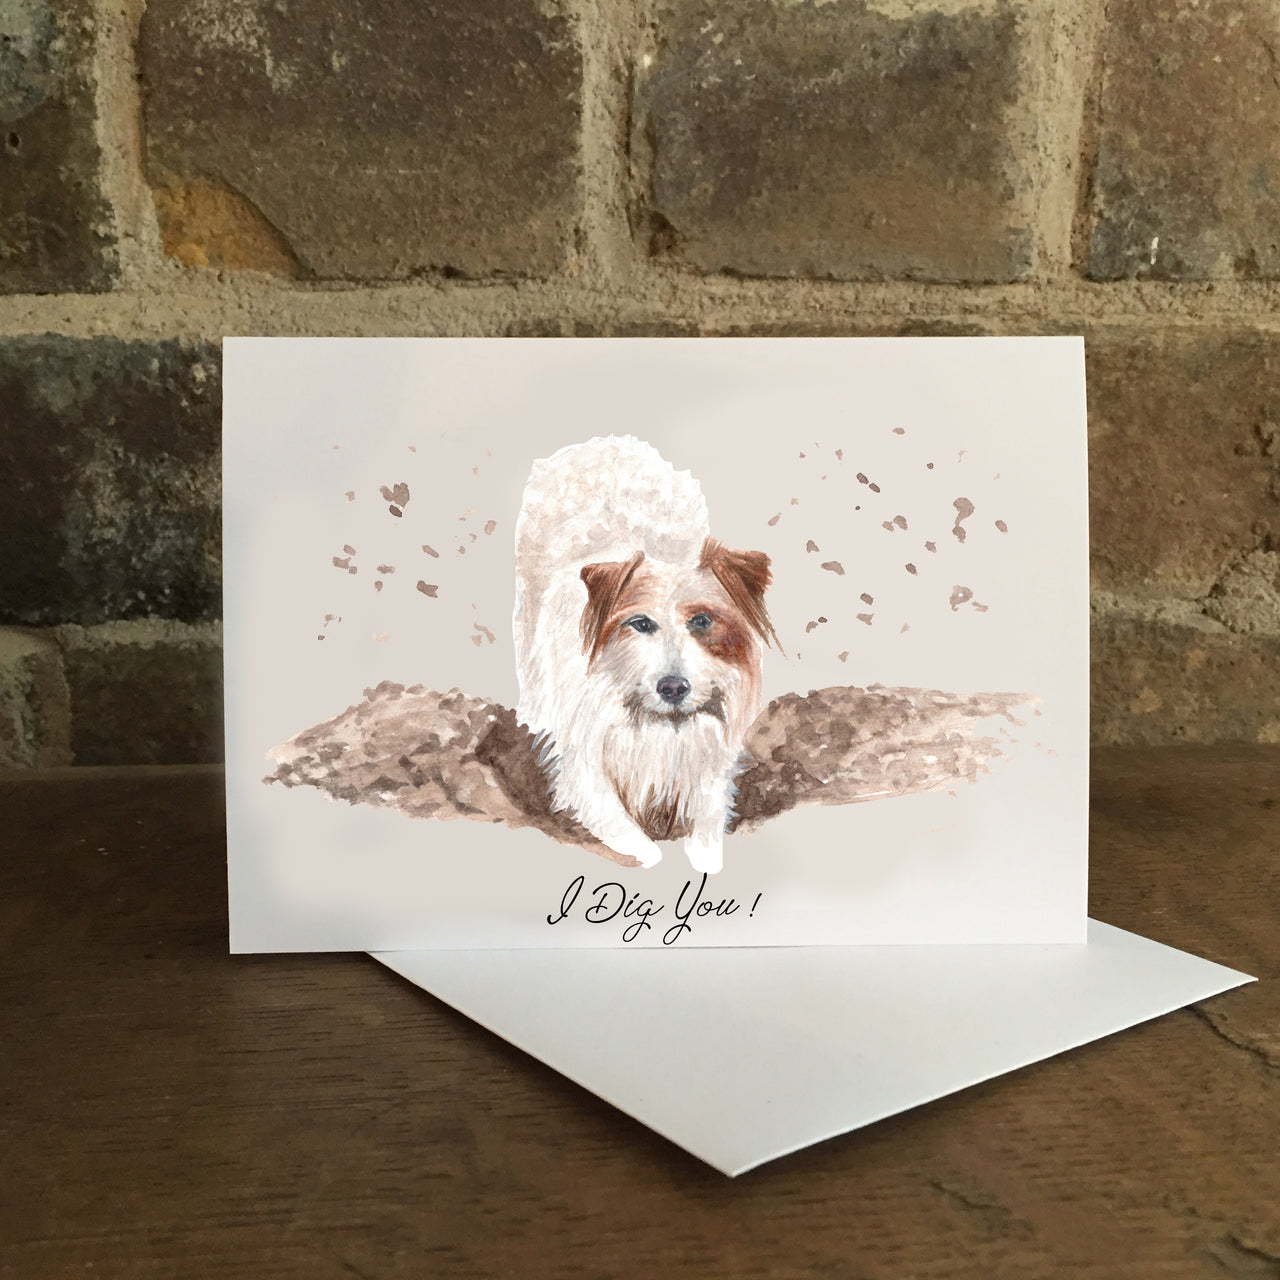 I Dig You Card - Greeting card for loved one